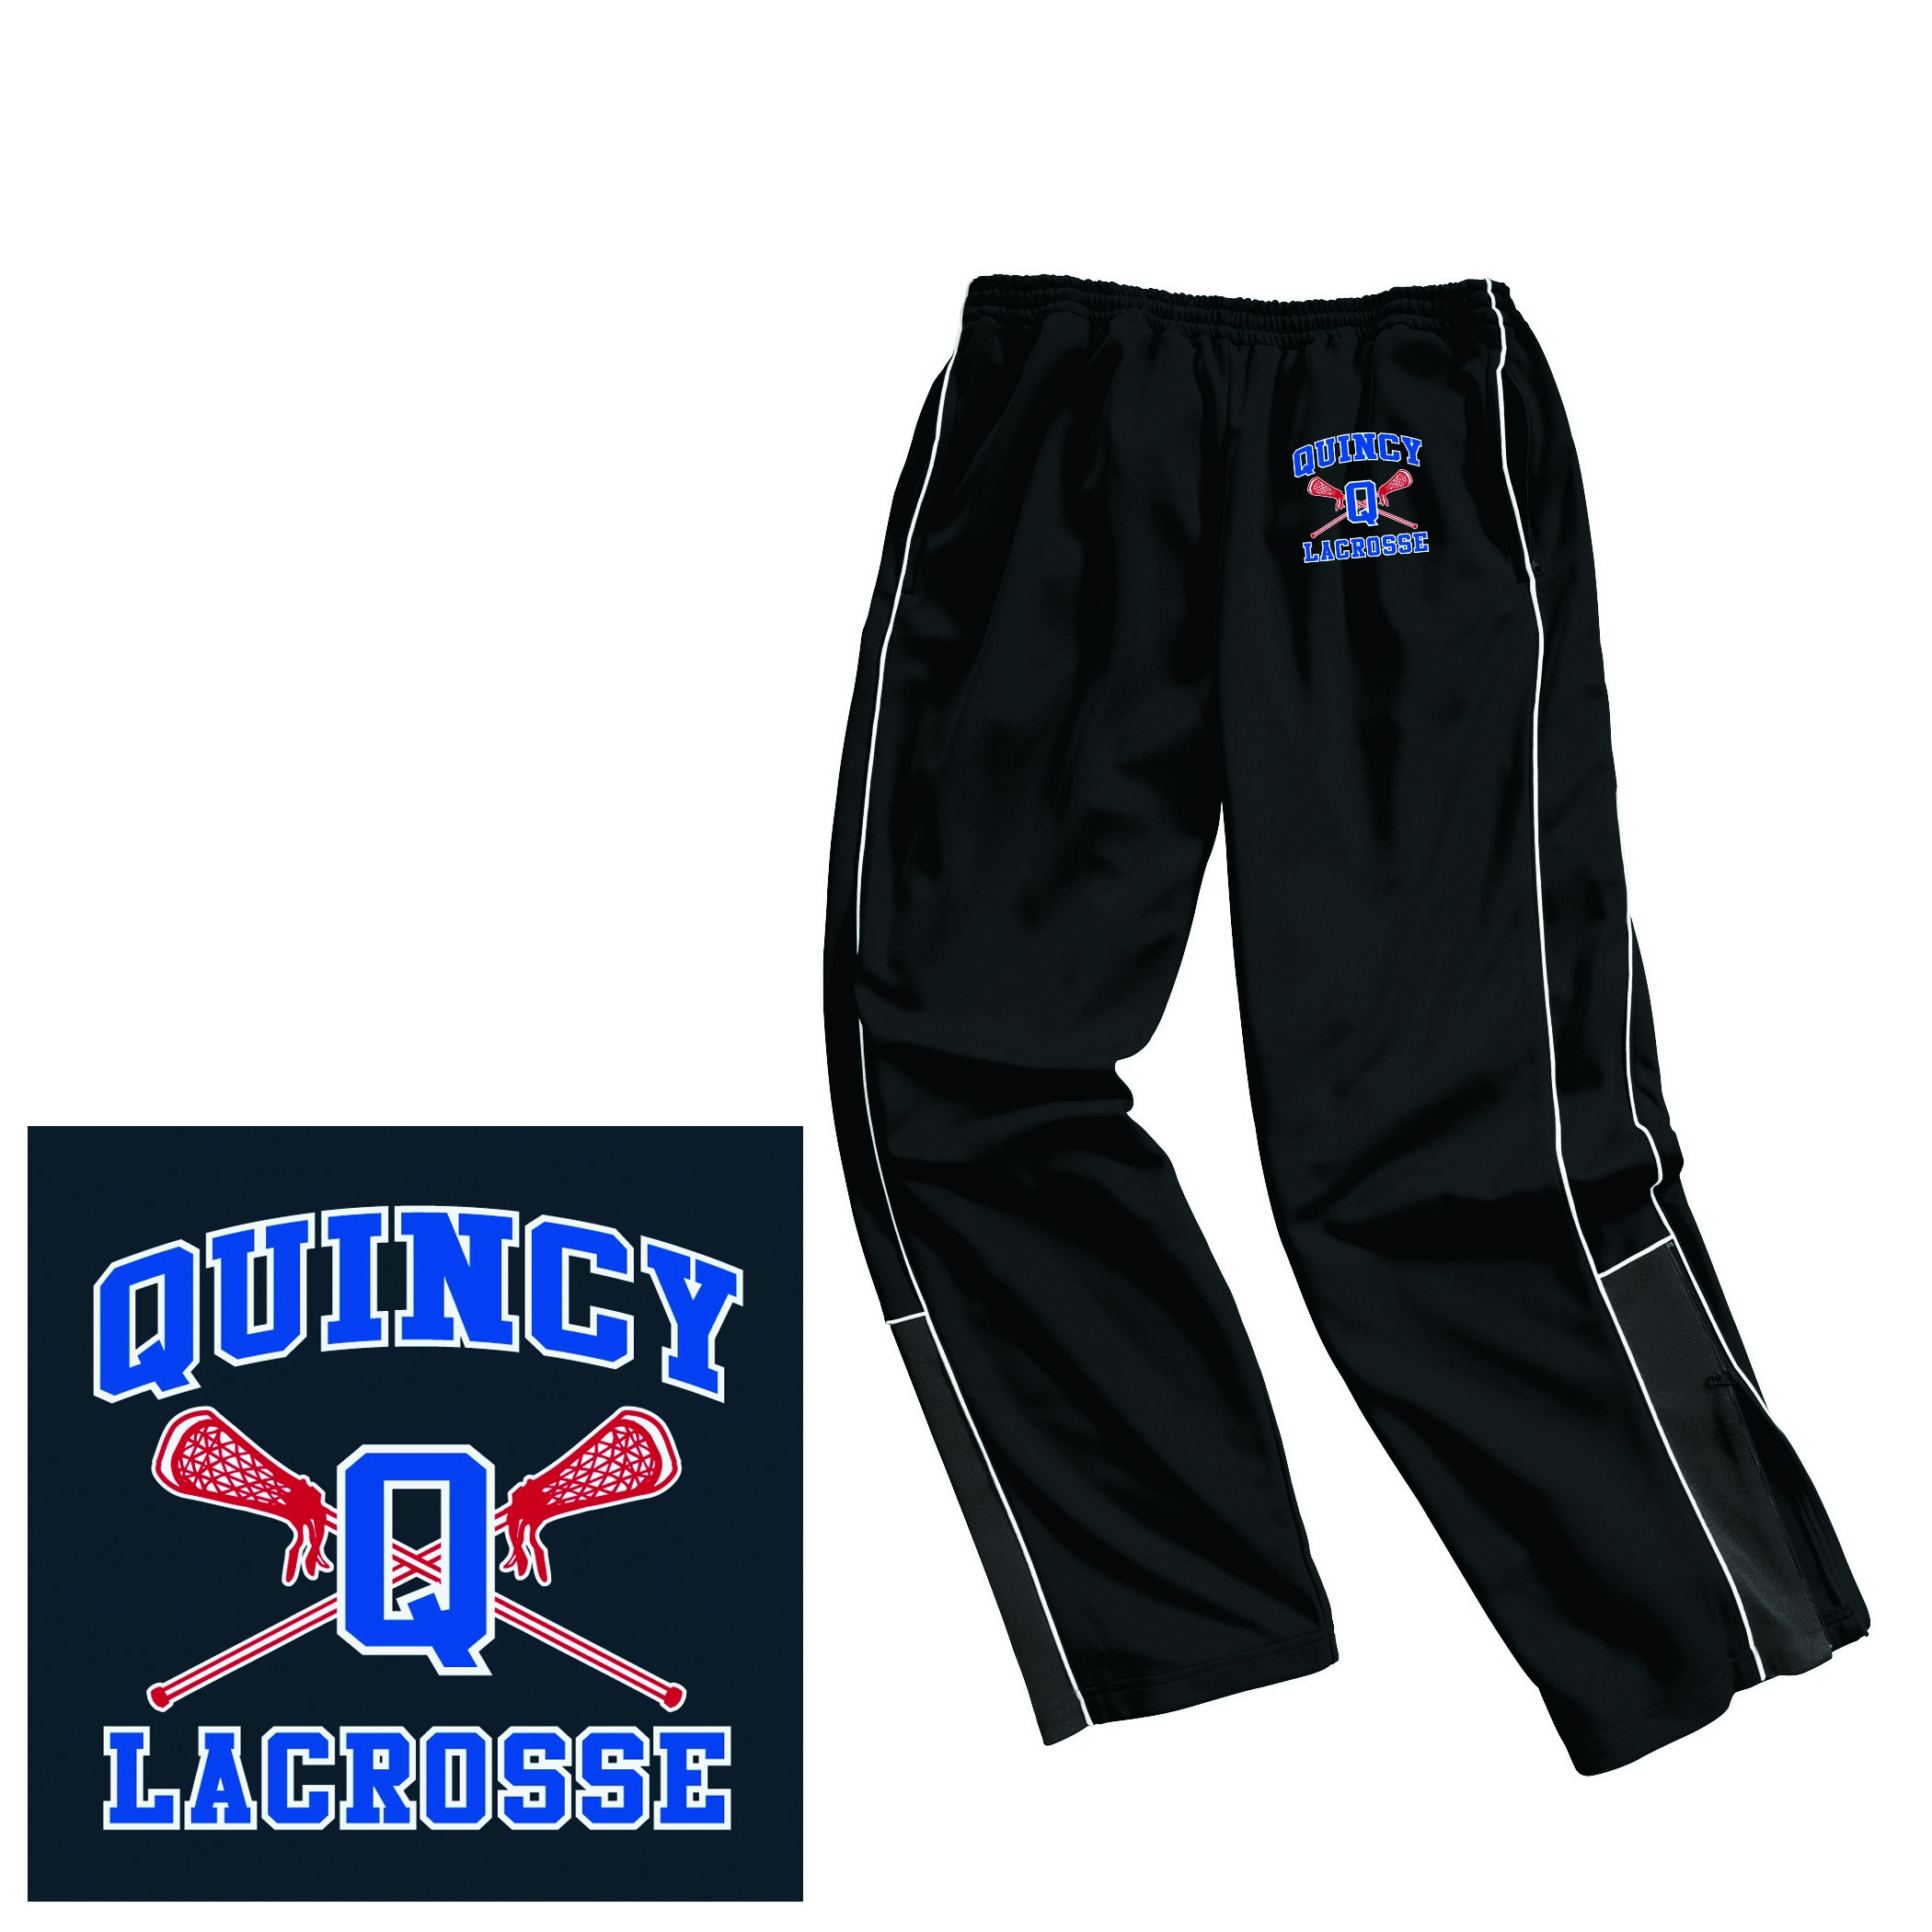 Quincy Lacrosse Chartles River Men's Olympian Pant 9985